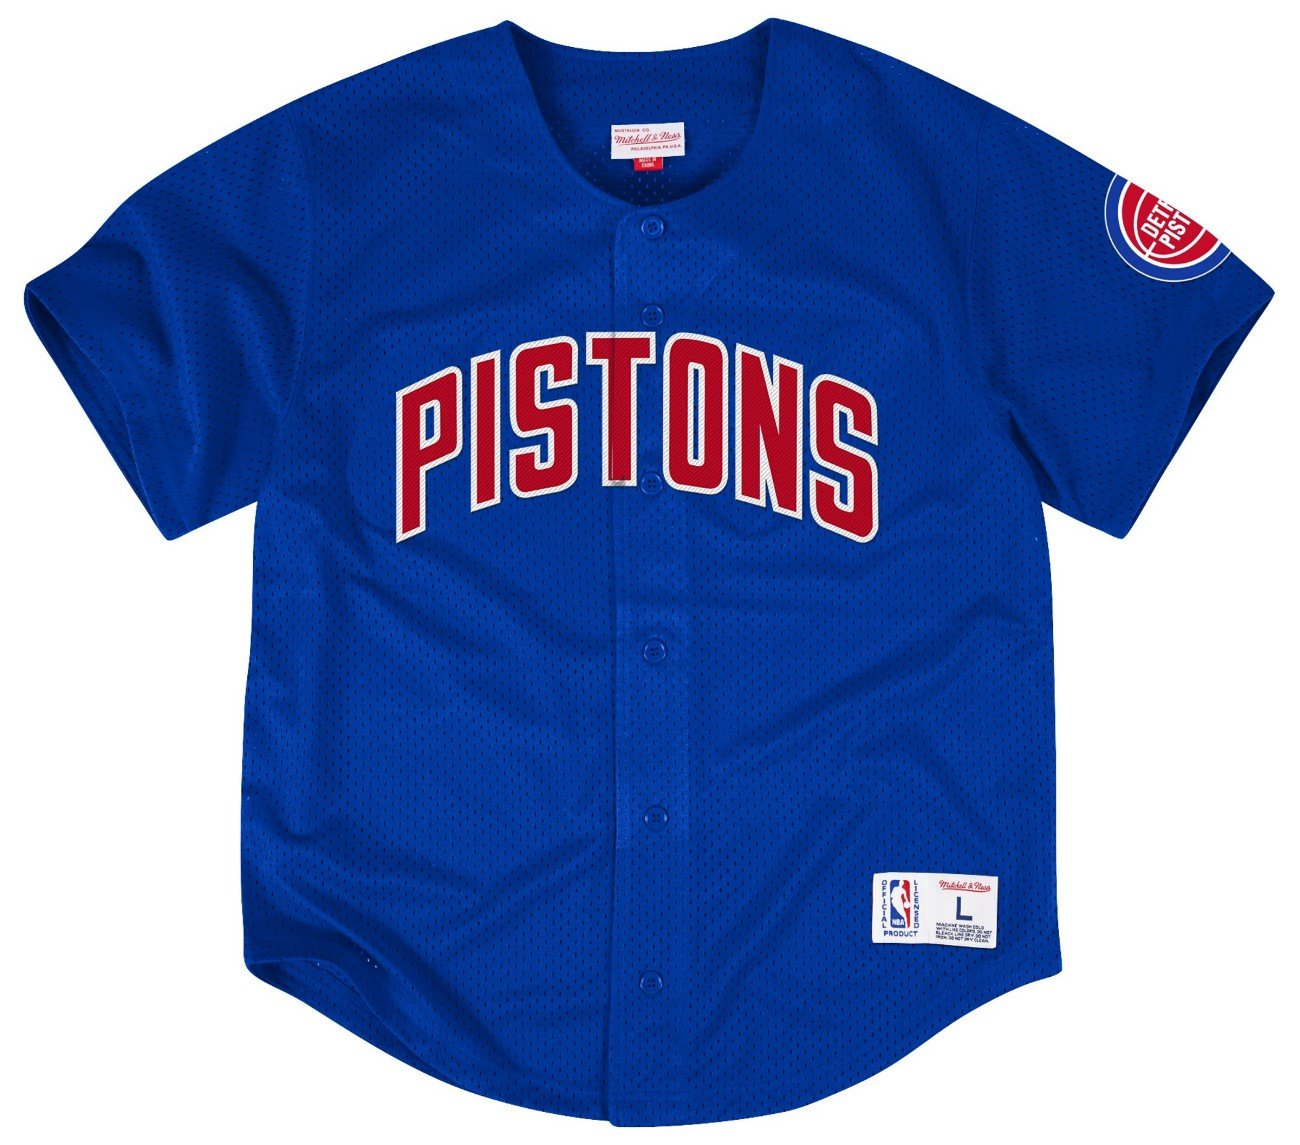 Detroit Pistons Mitchell & Ness NBA Men s Malla Button Down Jersey Camiseta Camiseta, M: Amazon.es: Deportes y aire libre